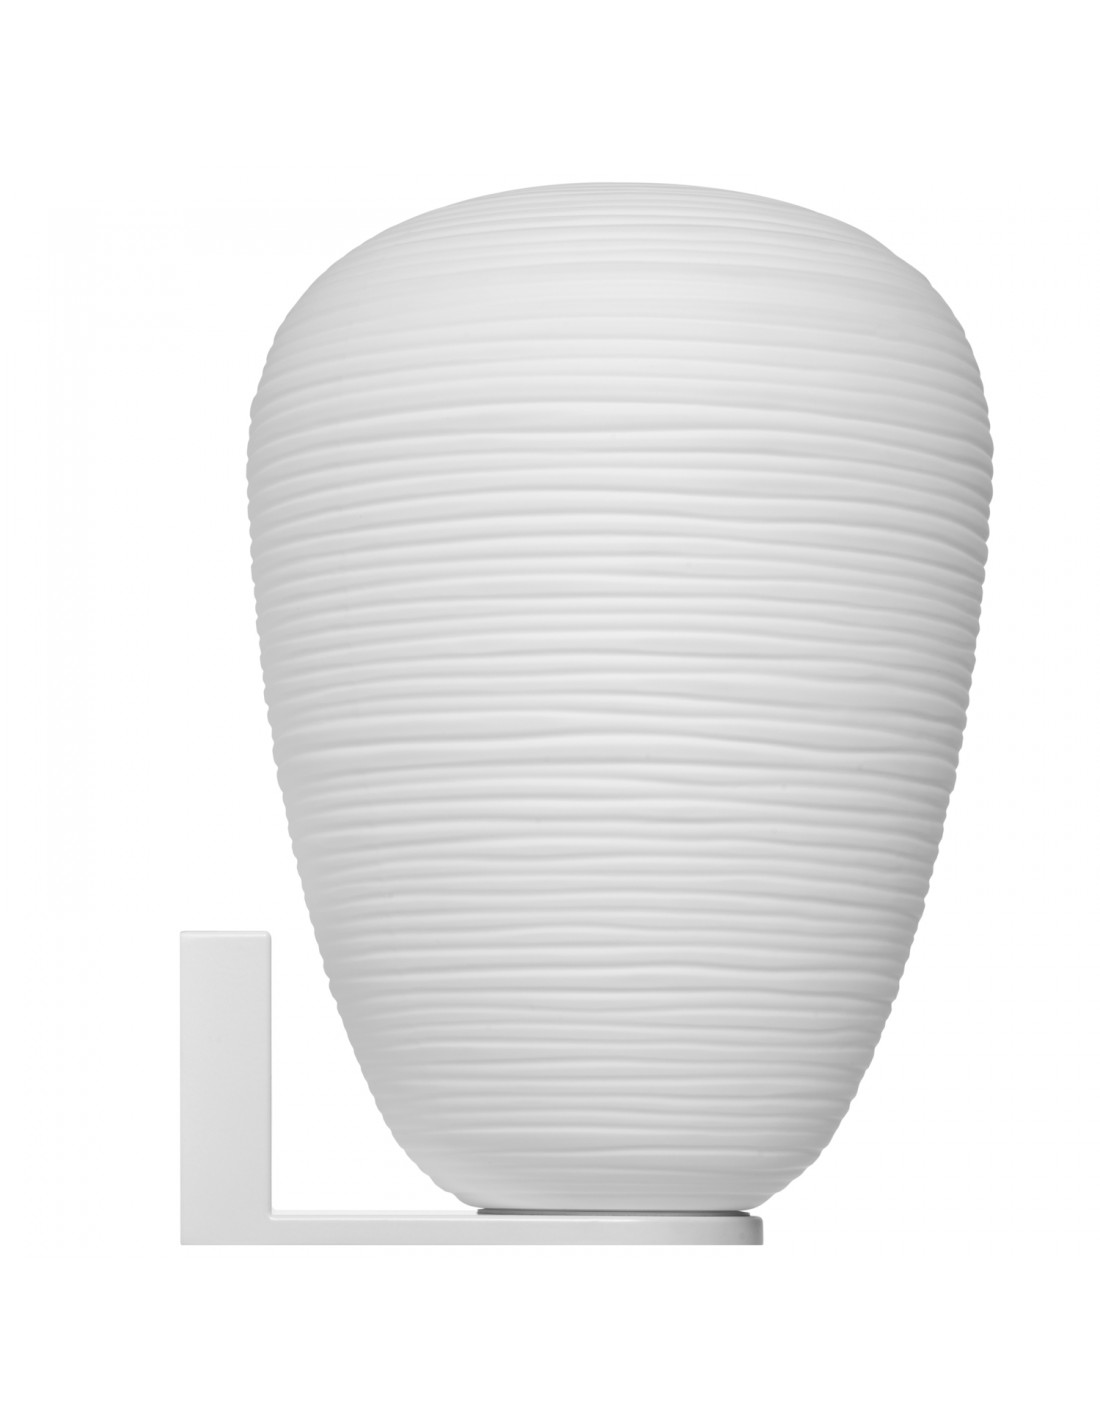 APPLIQUE RITUALS 1 foscarini